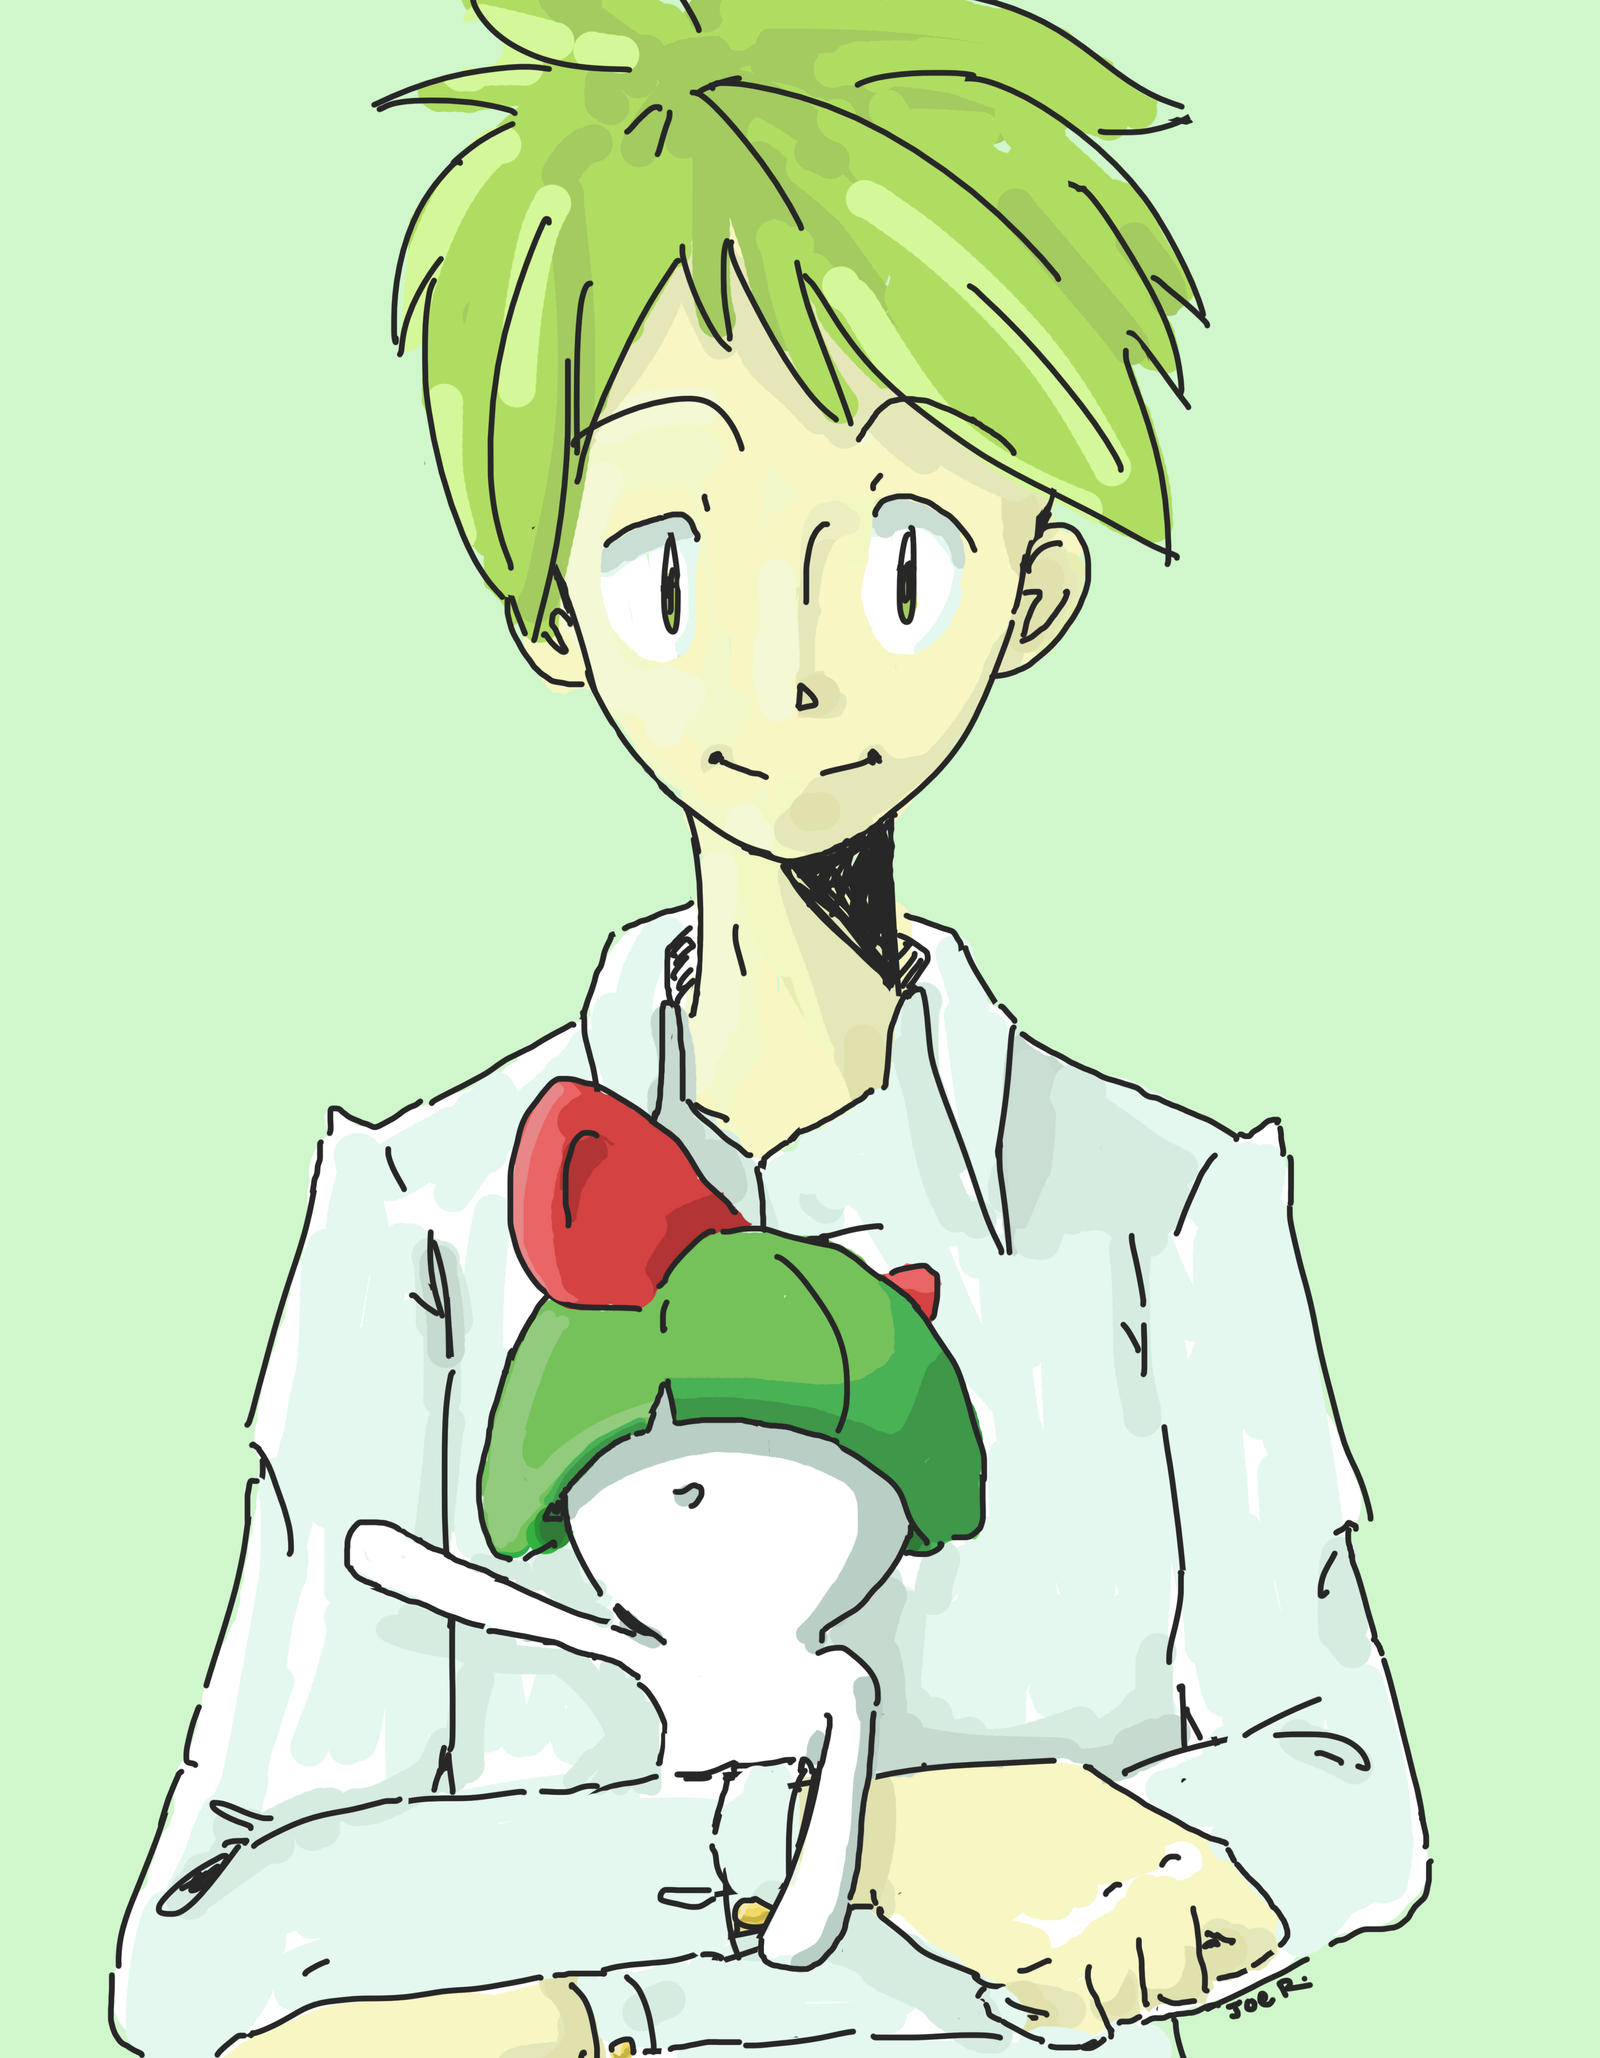 Wally and Ralts color by J-0-E on DeviantArt